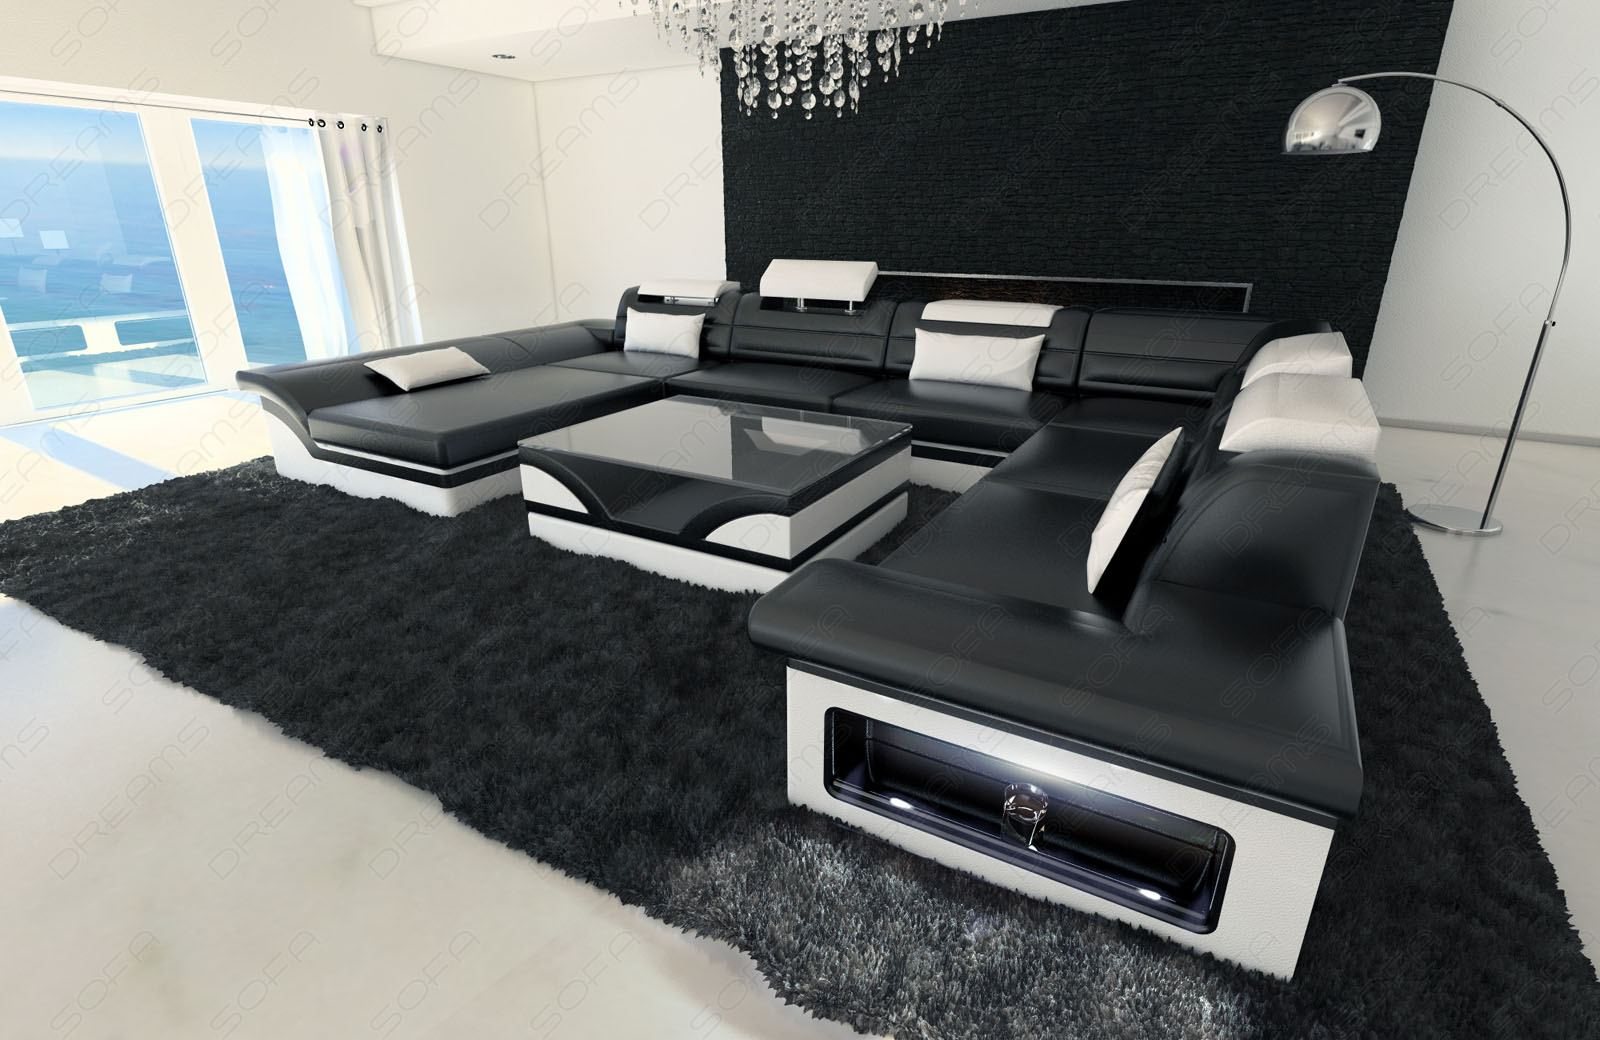 wohnlandschaft leder xl couch ecksofa monza lounge sofa garnitur couchtisch leds ebay. Black Bedroom Furniture Sets. Home Design Ideas